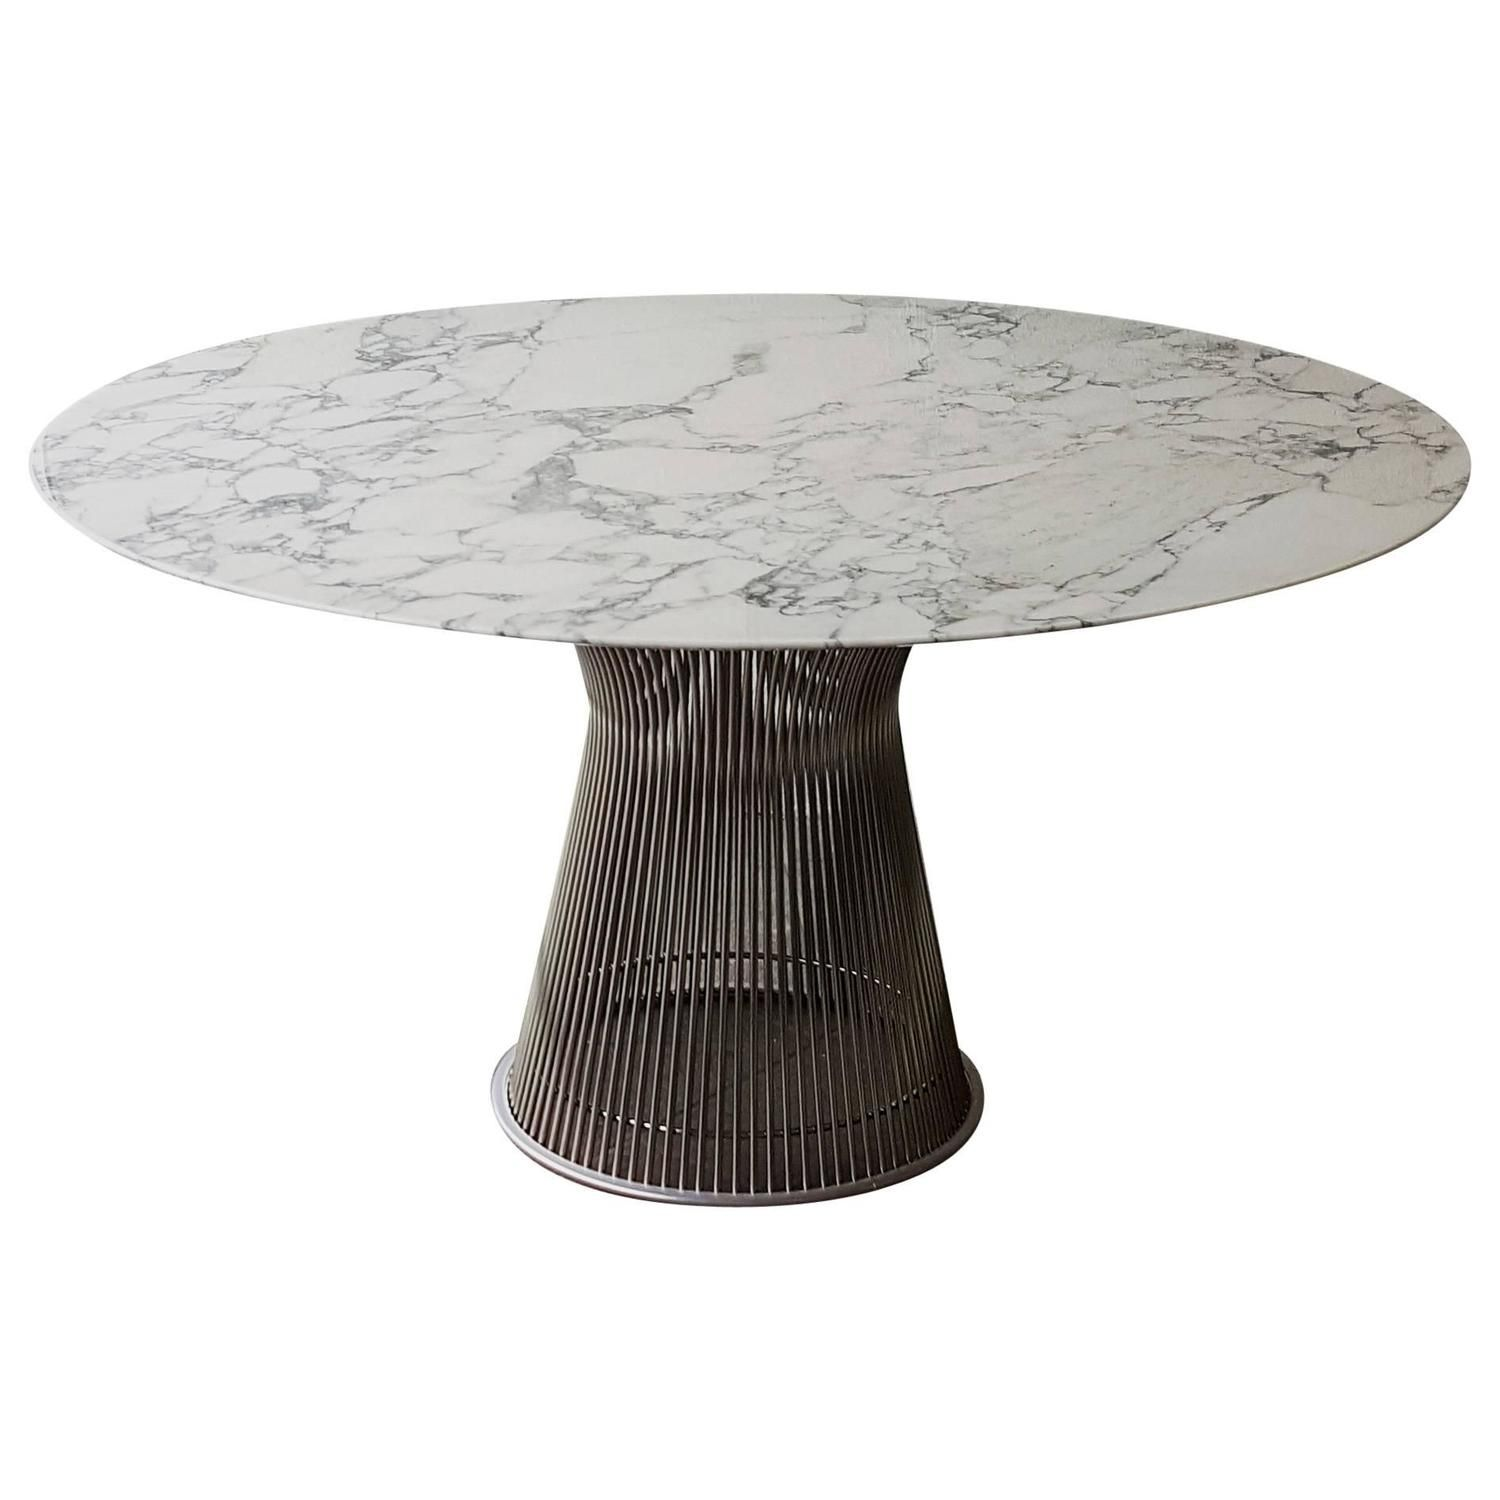 Warren Platner for Knoll Arabescato Marble Top Dining Table